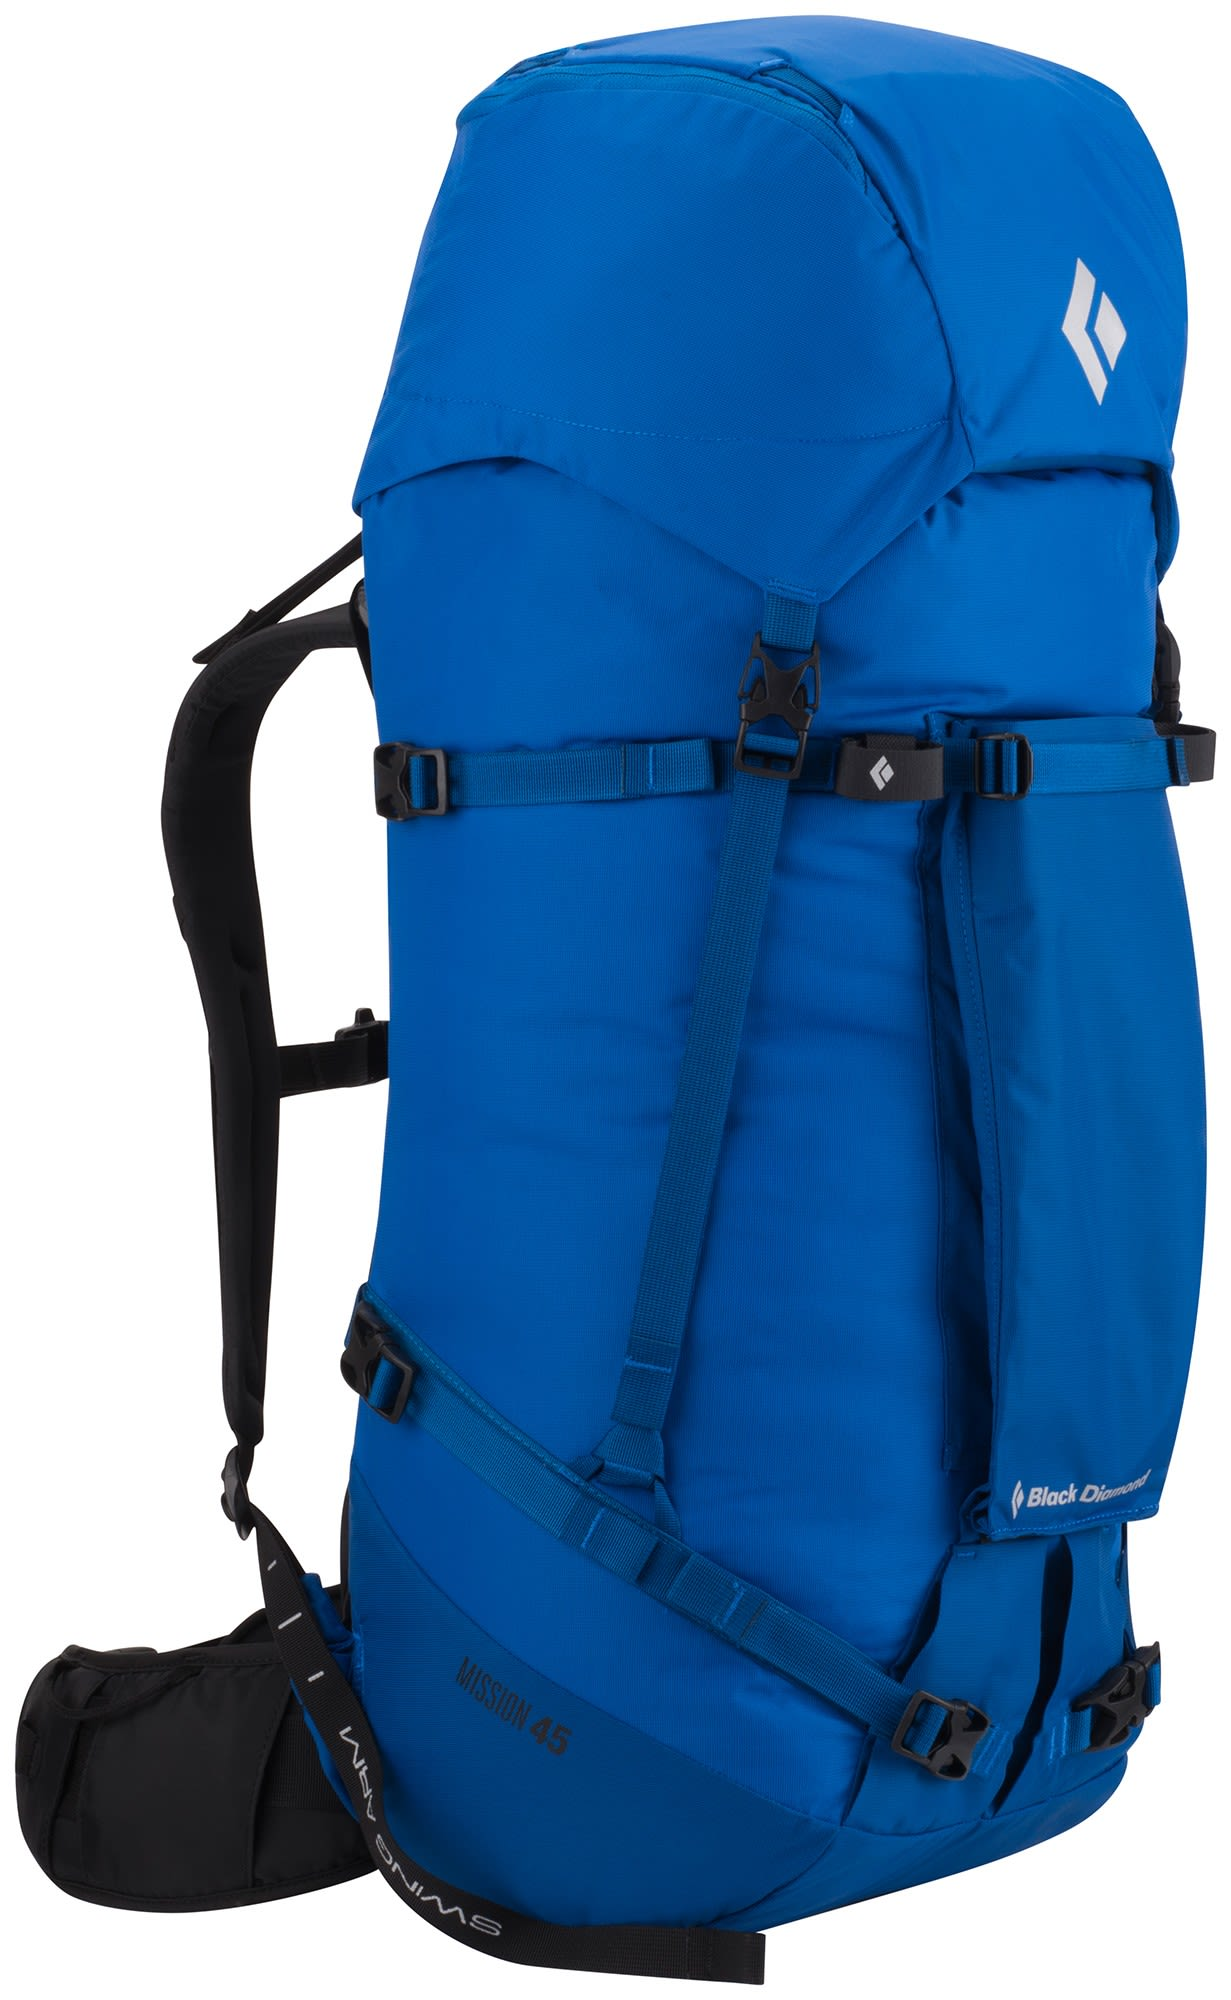 Black Diamond Mission 45 Pack Blau, Alpin-& Trekkingrucksack, M-L